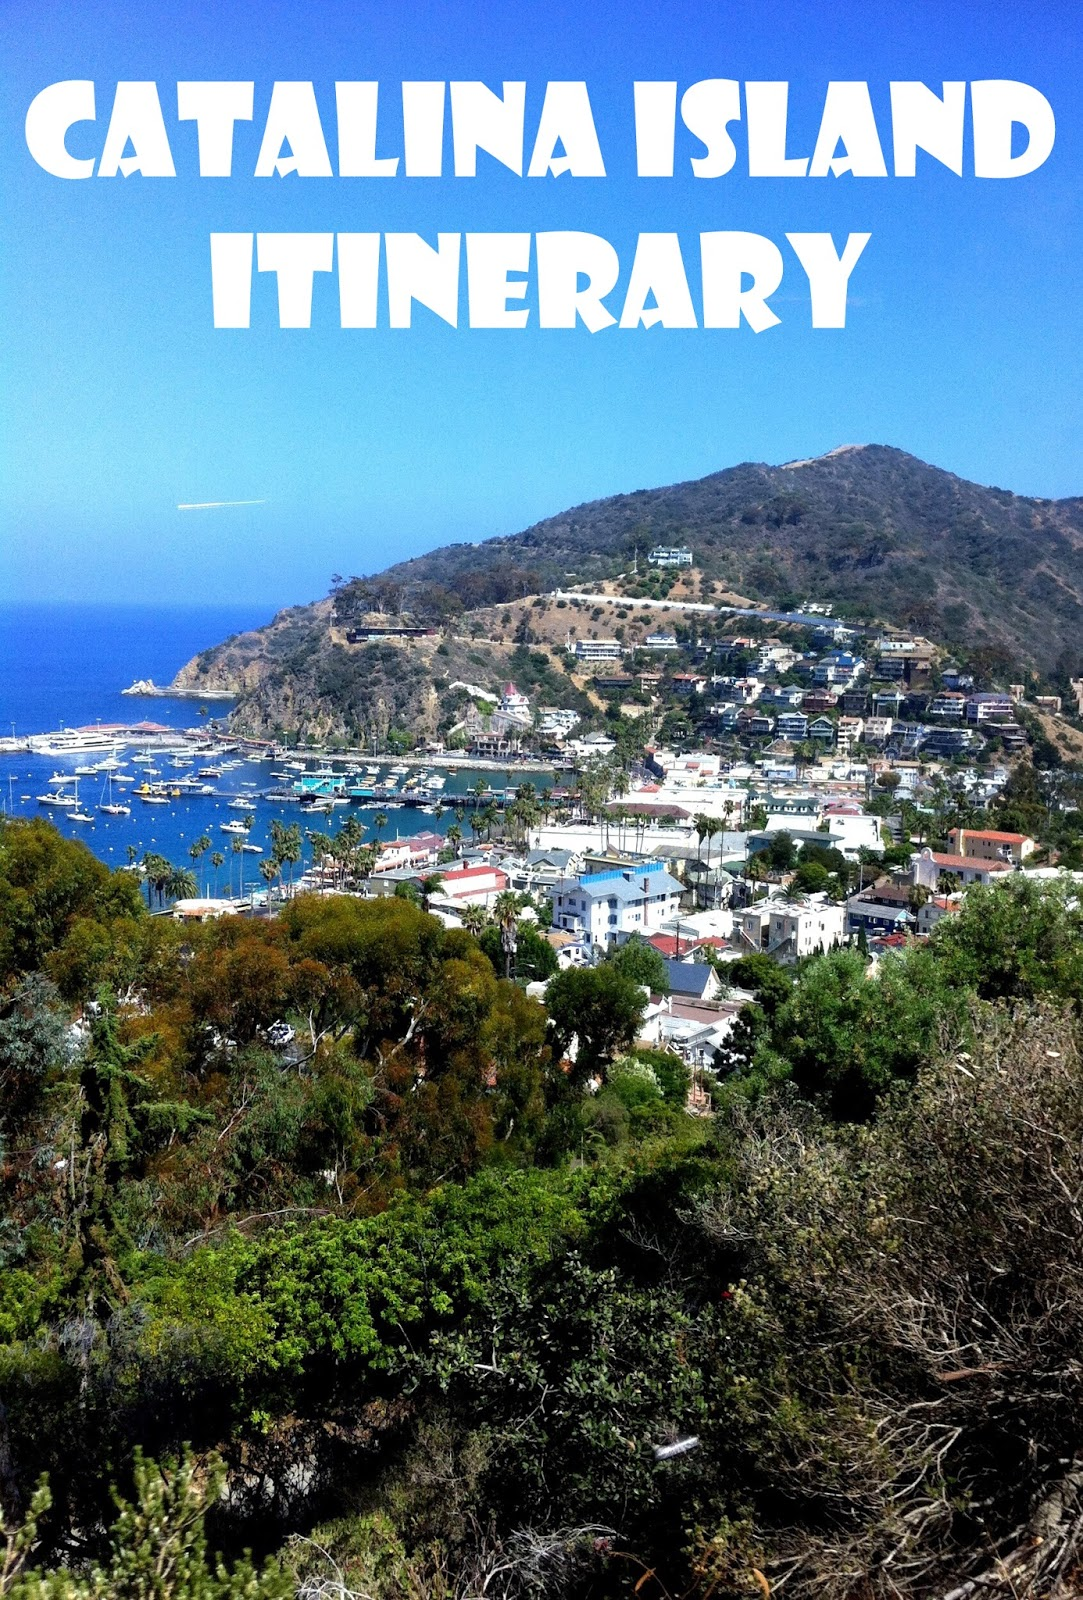 Travel The World S Itinerary For An Active Catalina Island